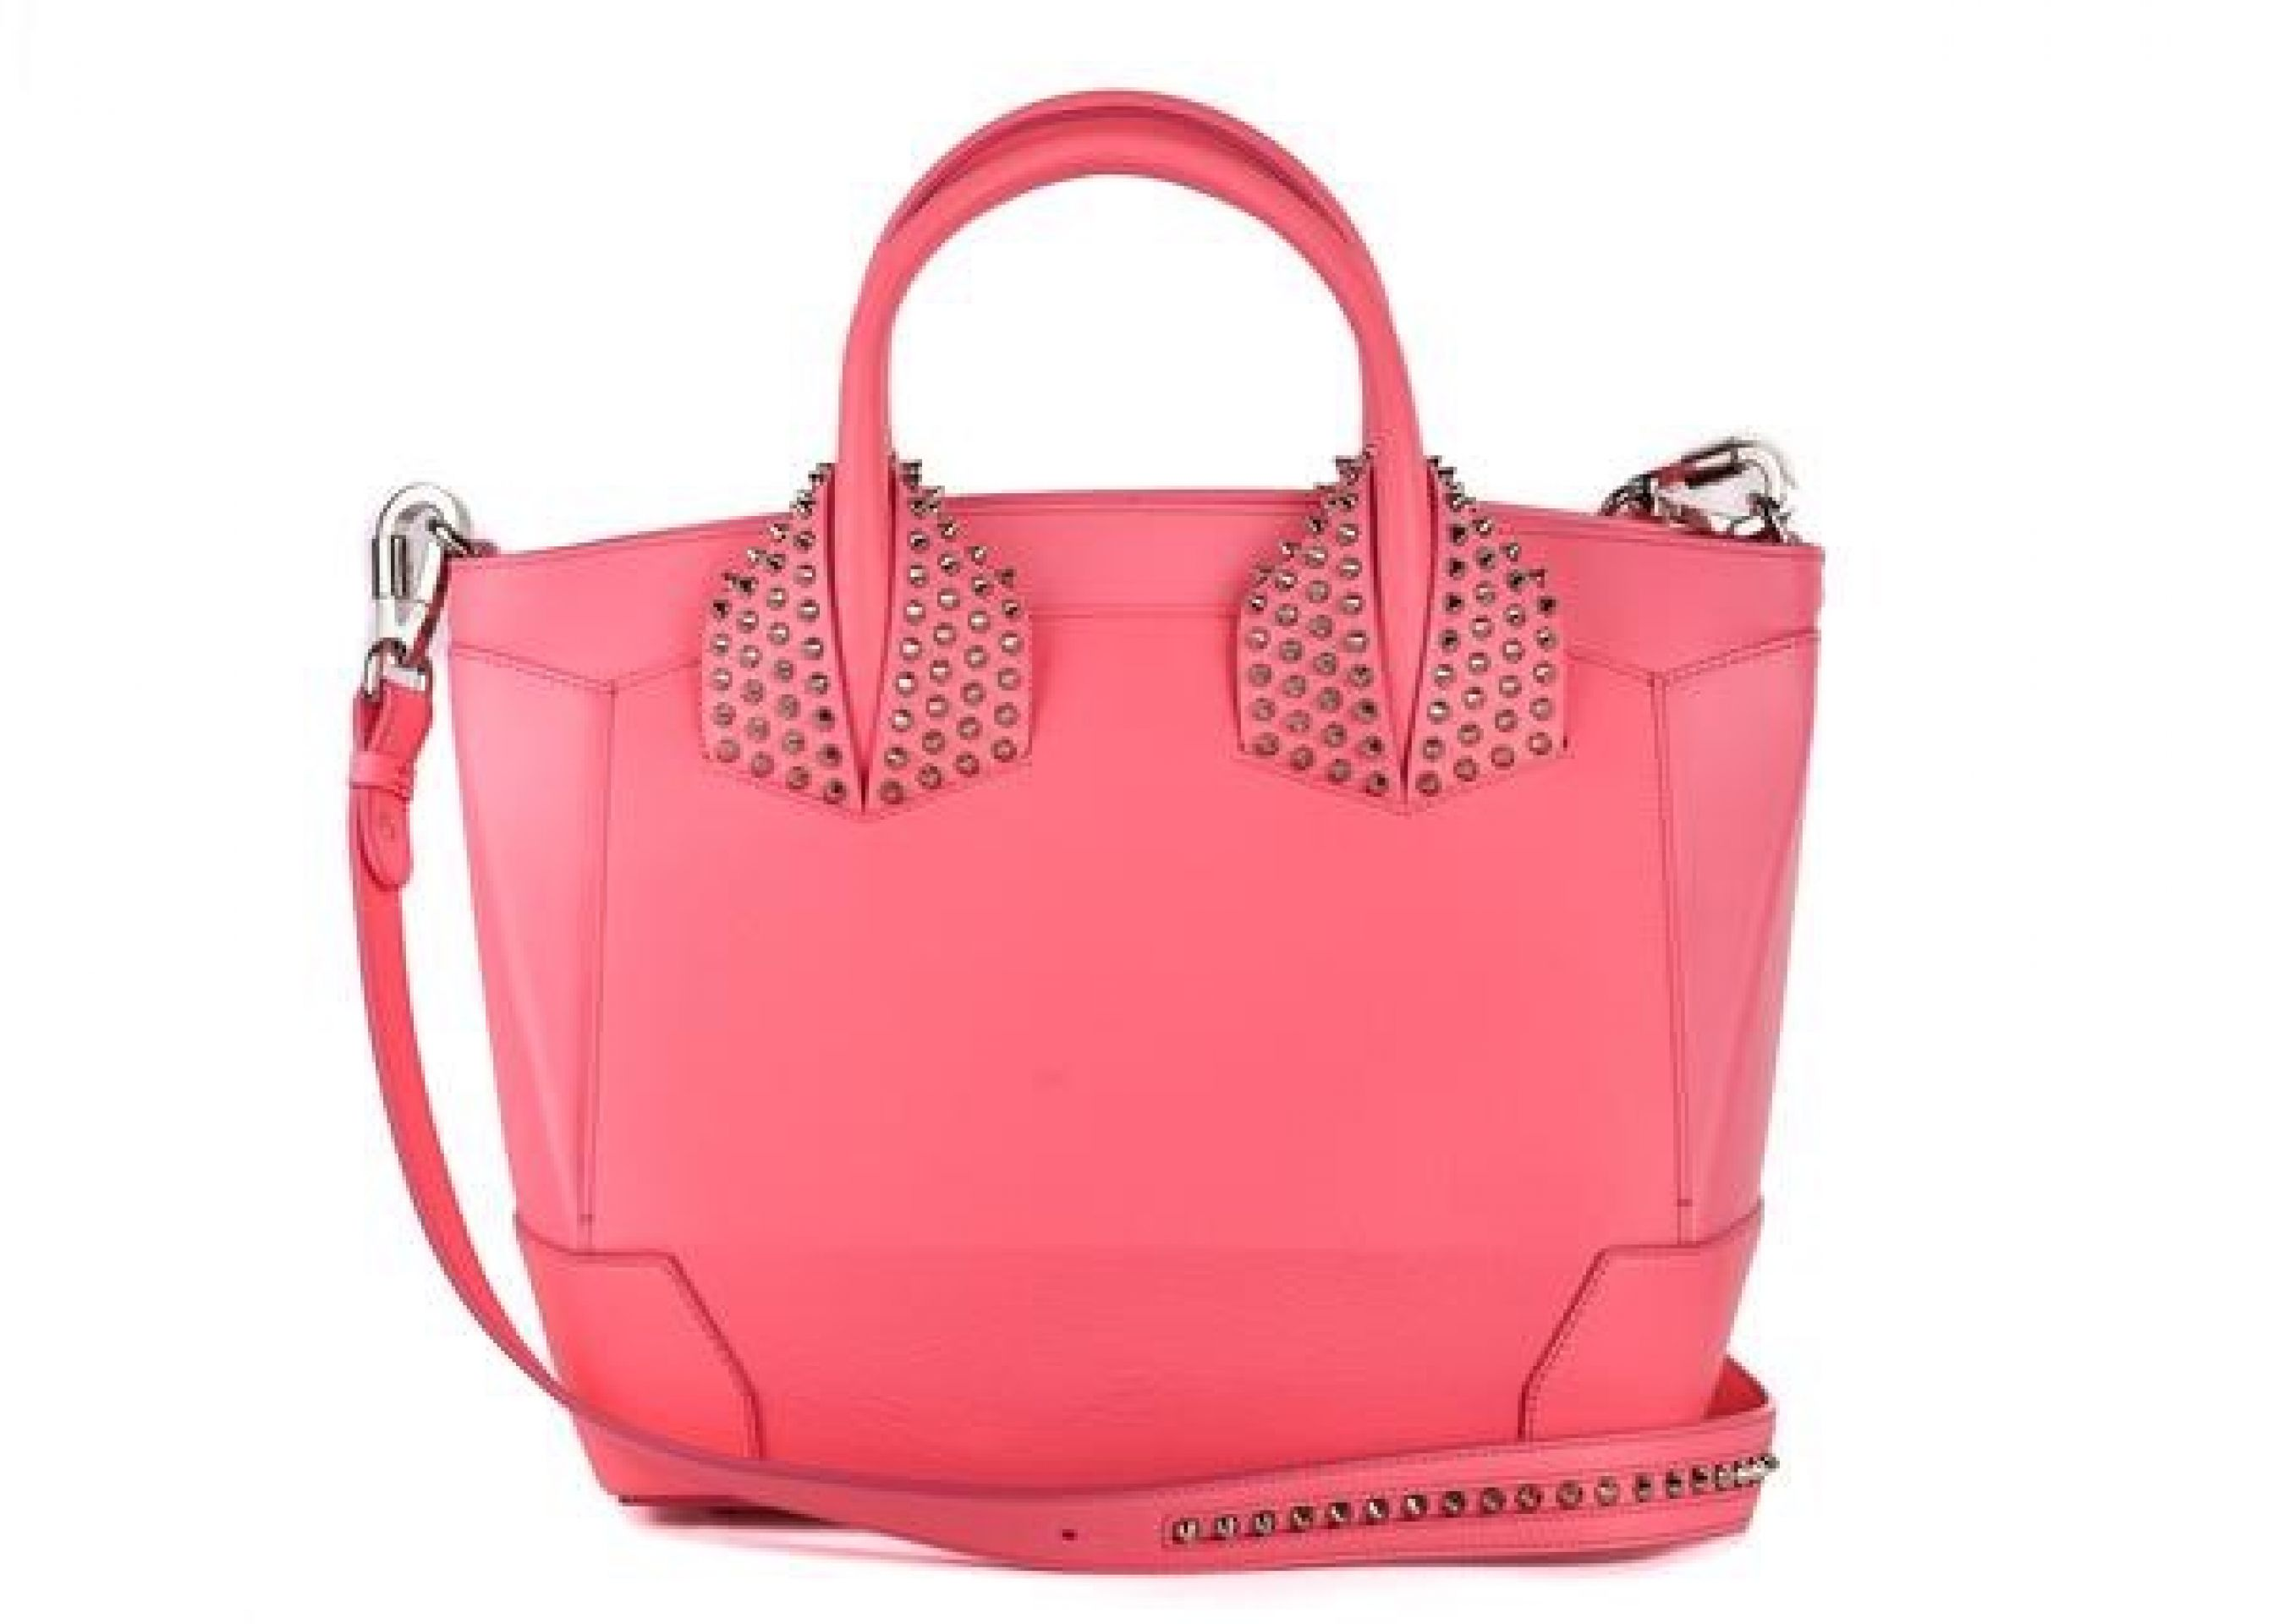 CHRISTIAN LOUBOUTIN WOMENS ELOISE PINK LARGE STUDDED LEATHER TOTE BAG